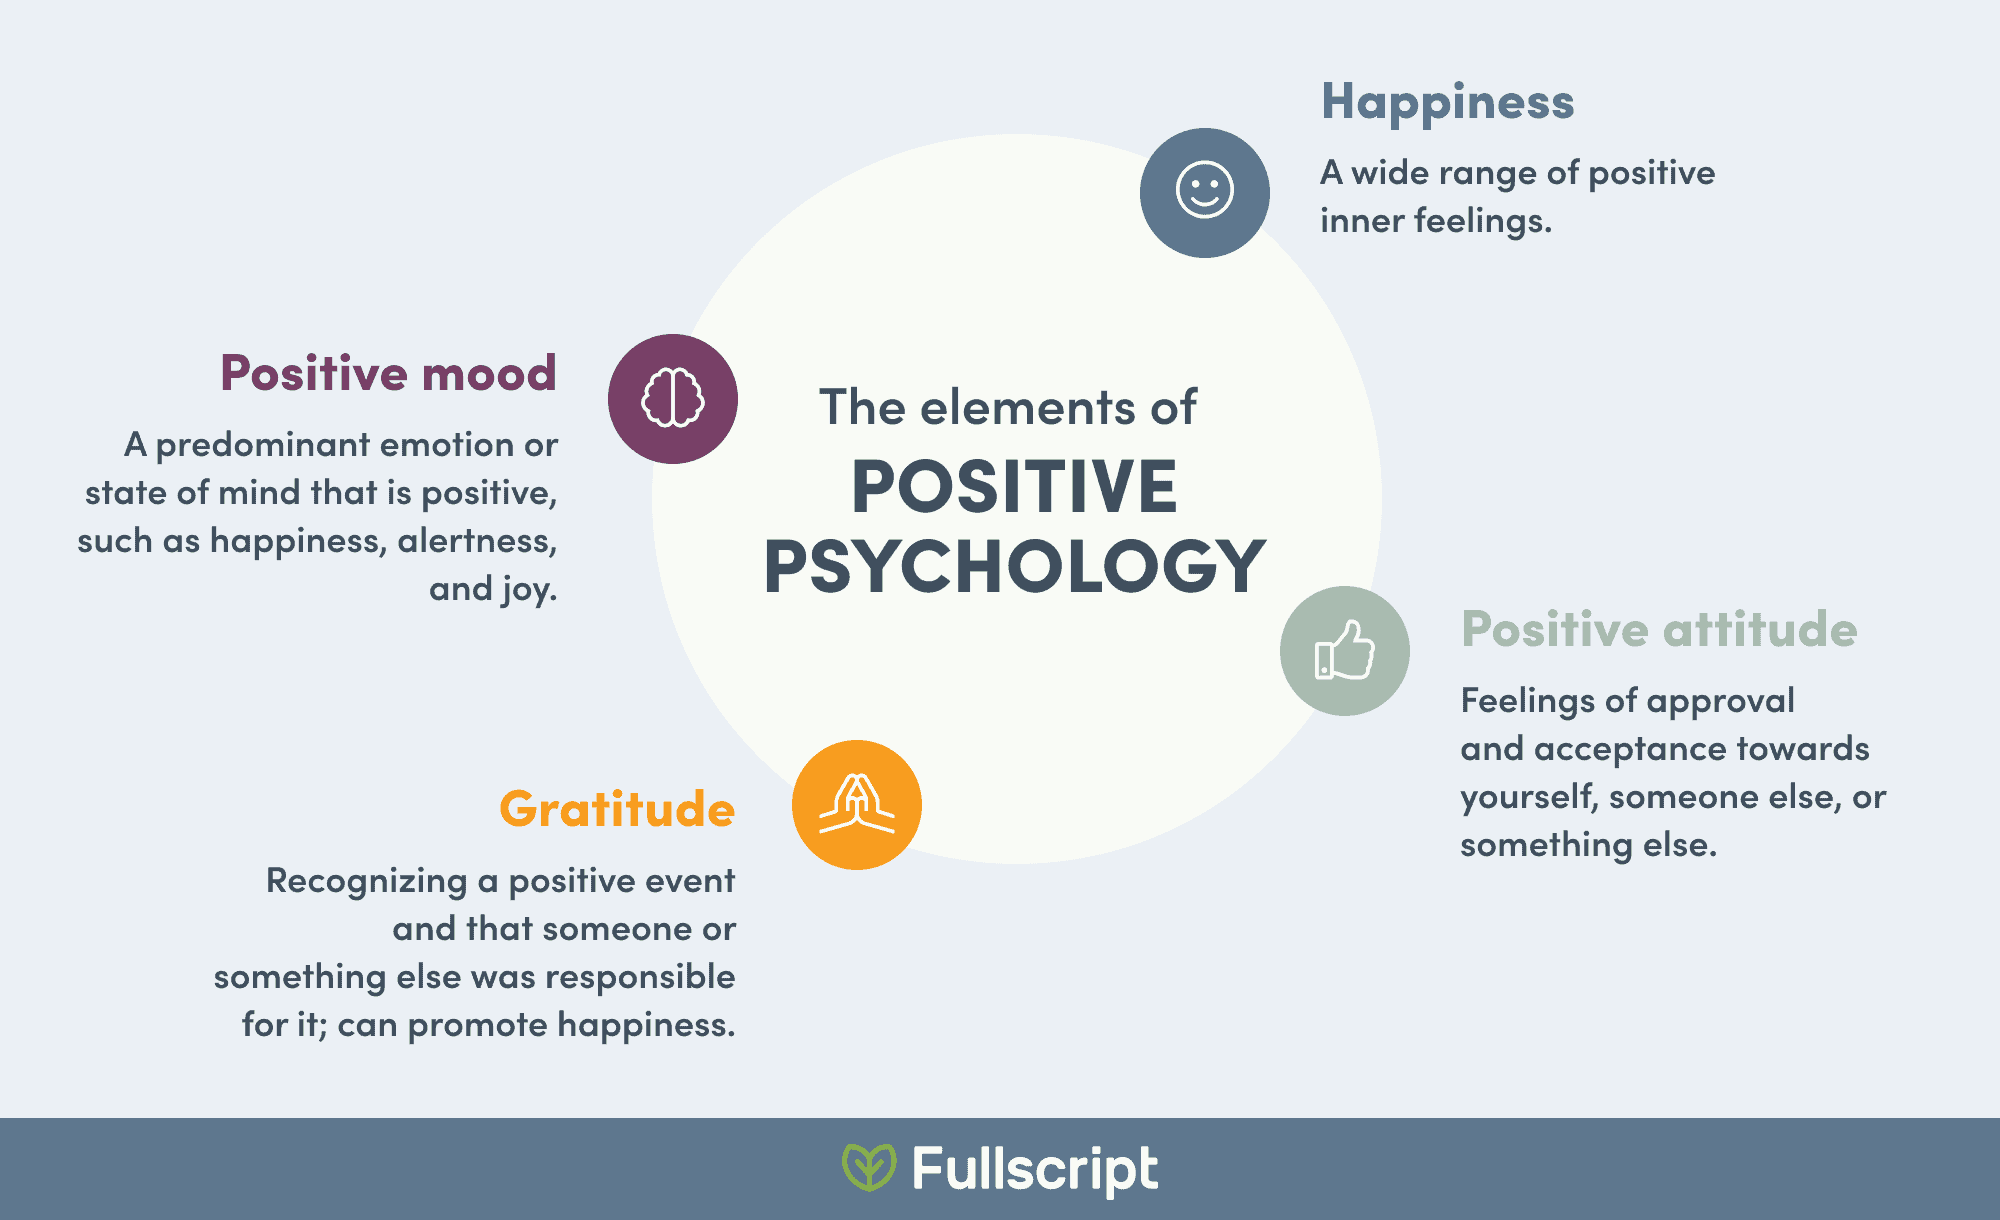 the elements of positive psychology